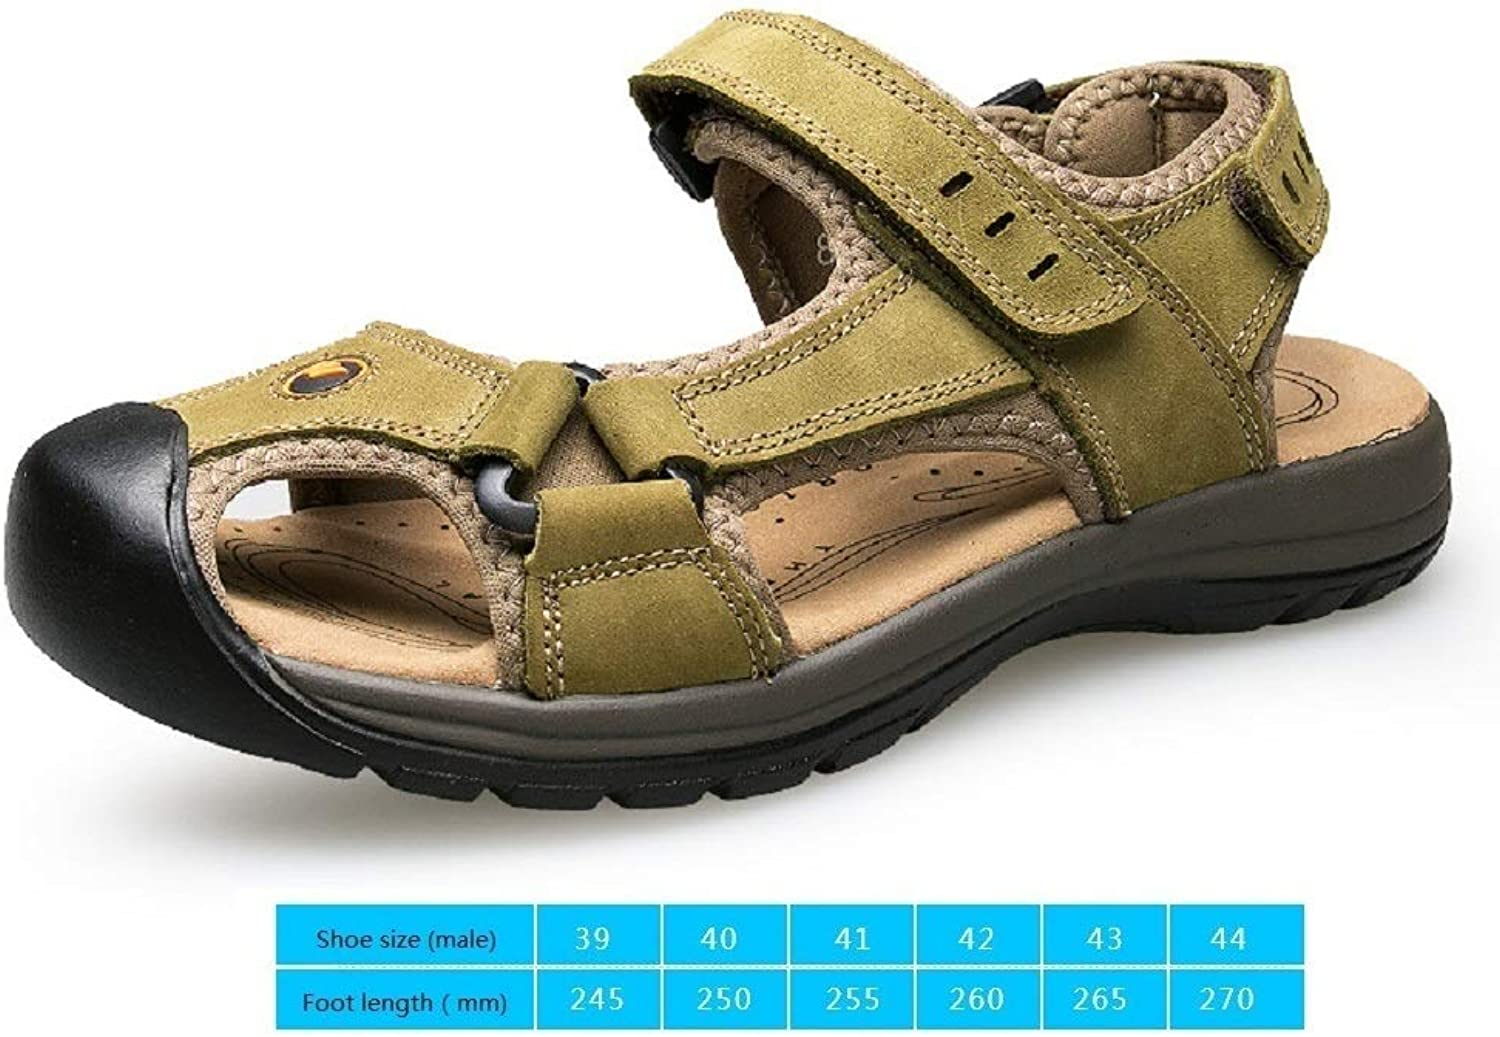 LZK Summer men's leather sandals Outdoor breathable beach shoes Baotou sports sandals Anti-collision predection toes null